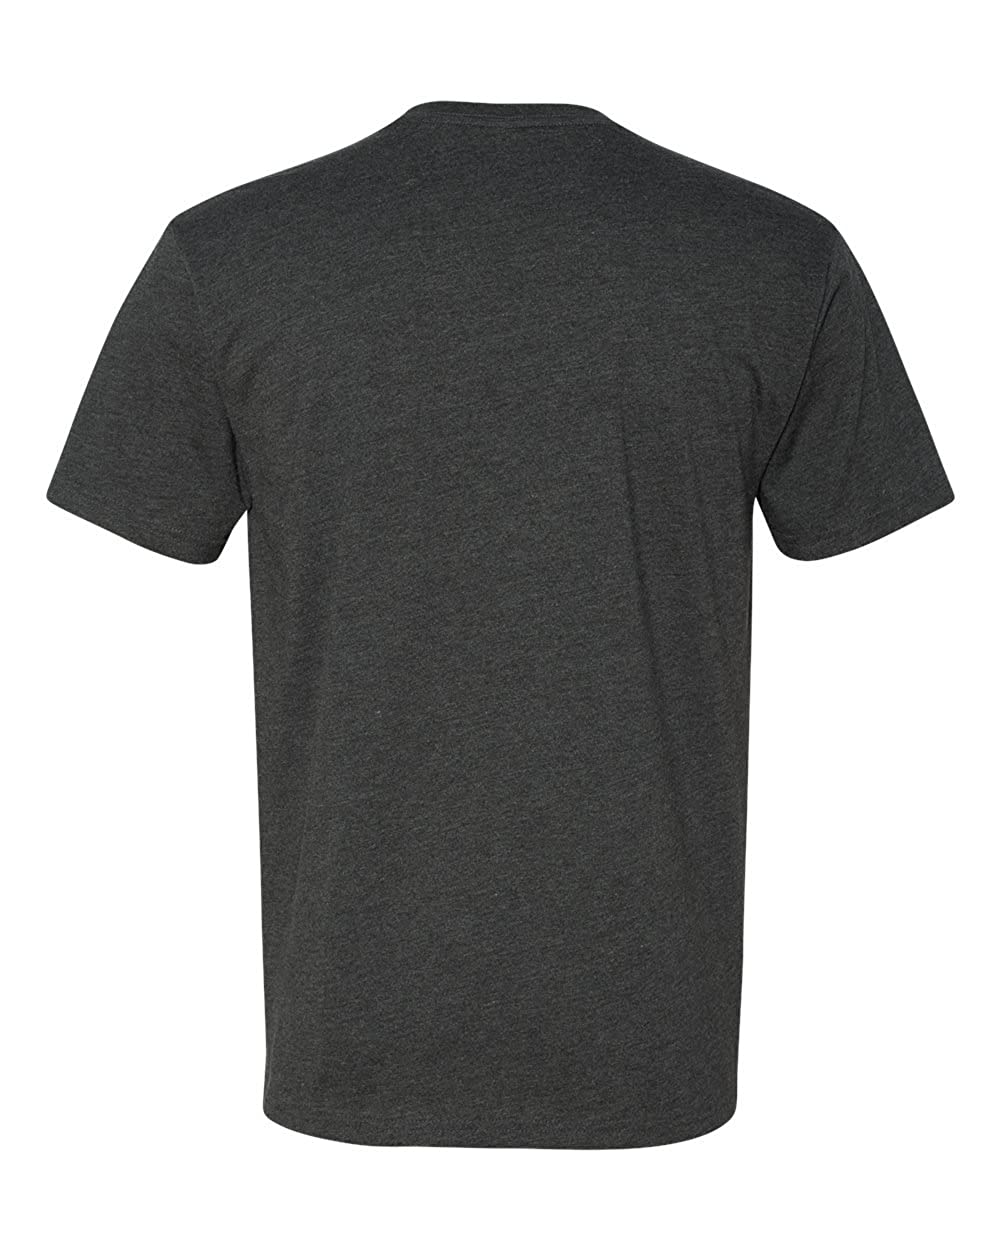 Next Level Premium Fitted CVC Crew Tee Charcoal Large Pack of 5